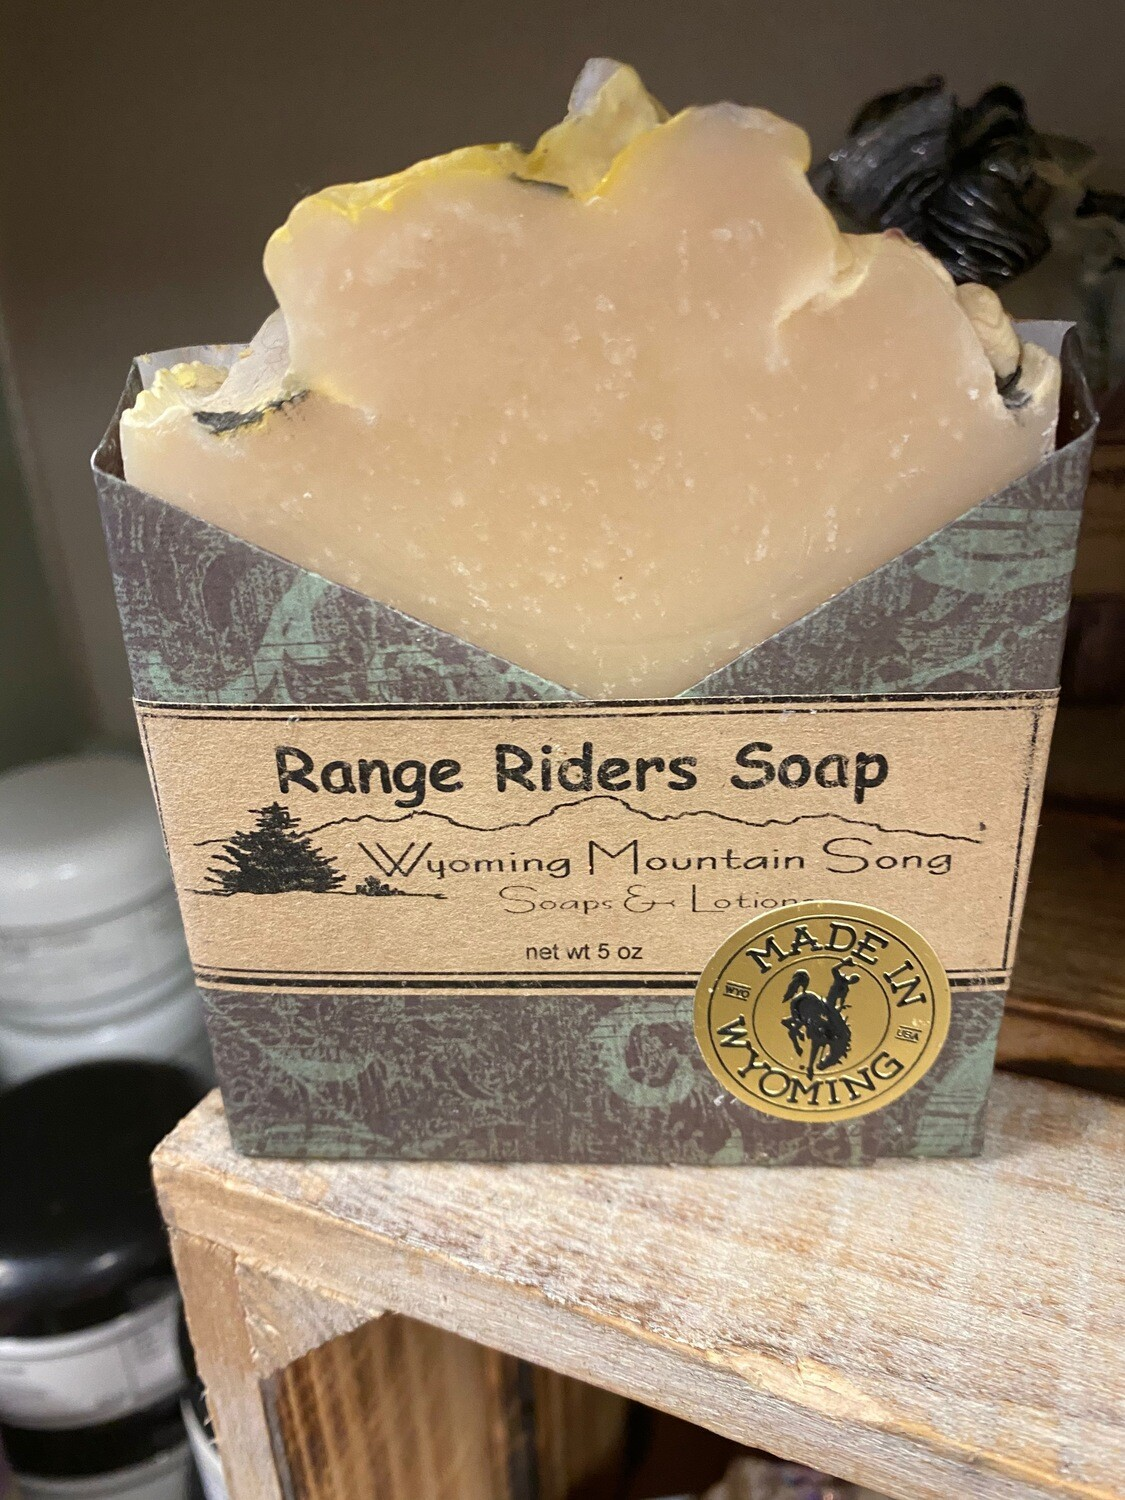 Wyoming Mountain Song soap, range riders